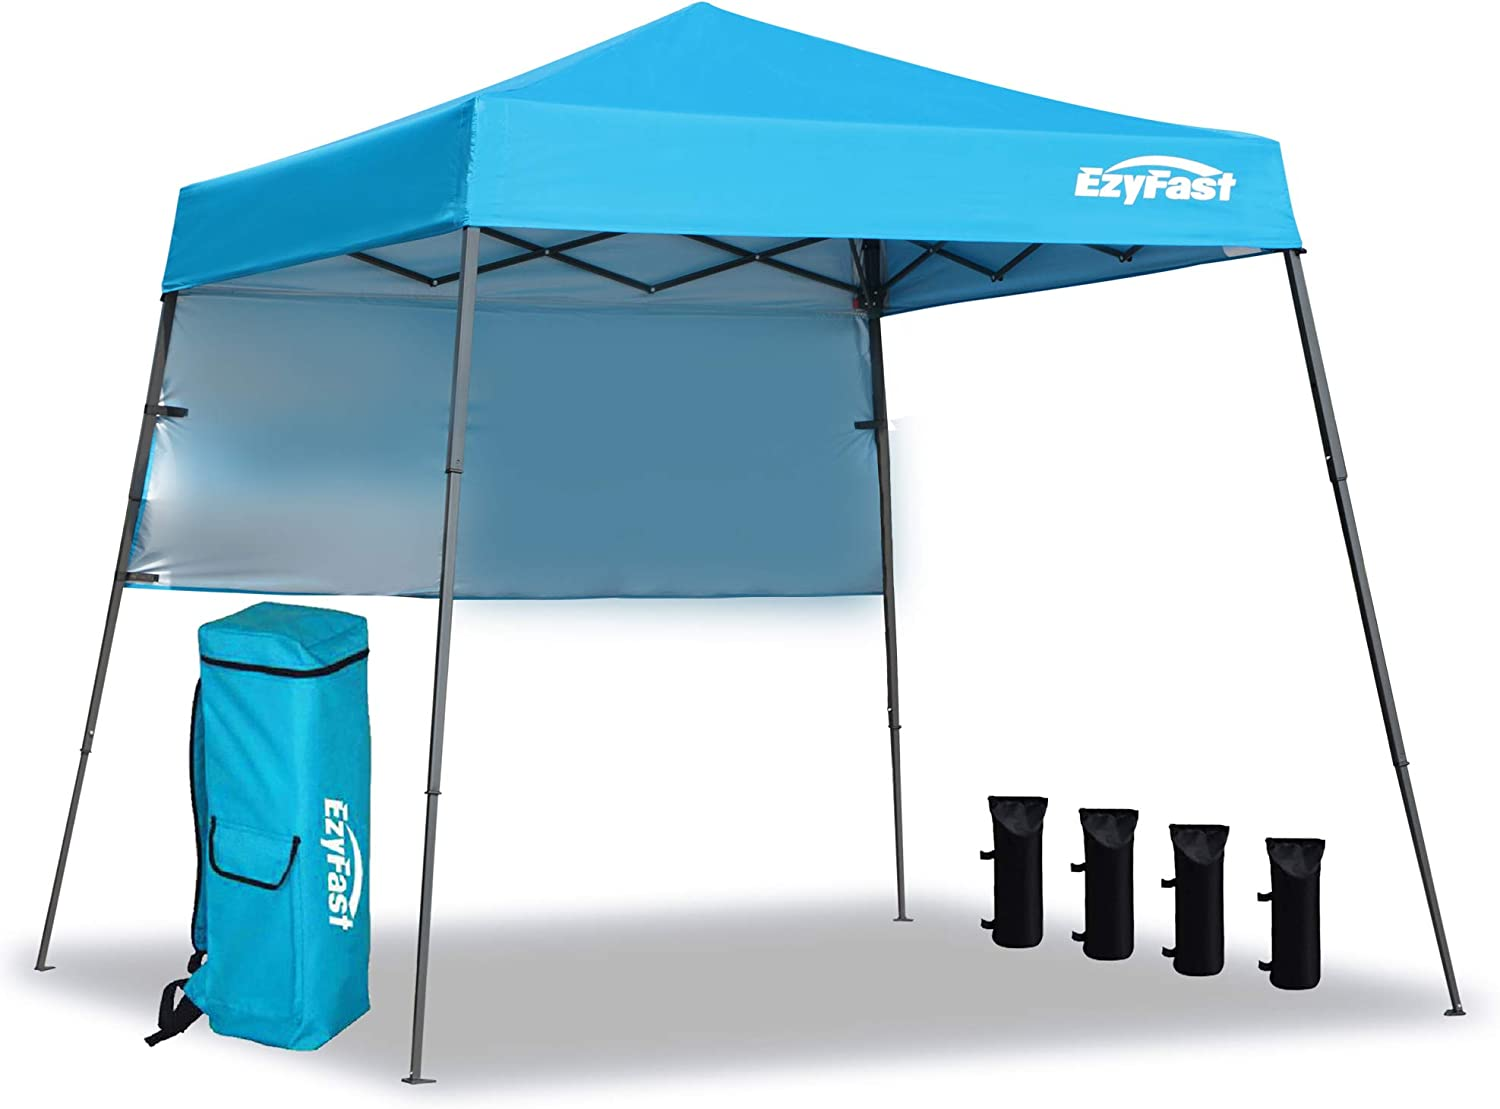 EzyFast Ultra Compact Backpack Canopy, Pop Up Shelter, Portable Sports Cabana, 7.5 x 7.5 ft base / 6 x 6 ft top for Hiking, Camping, Fishing, Picnic, Family Outings